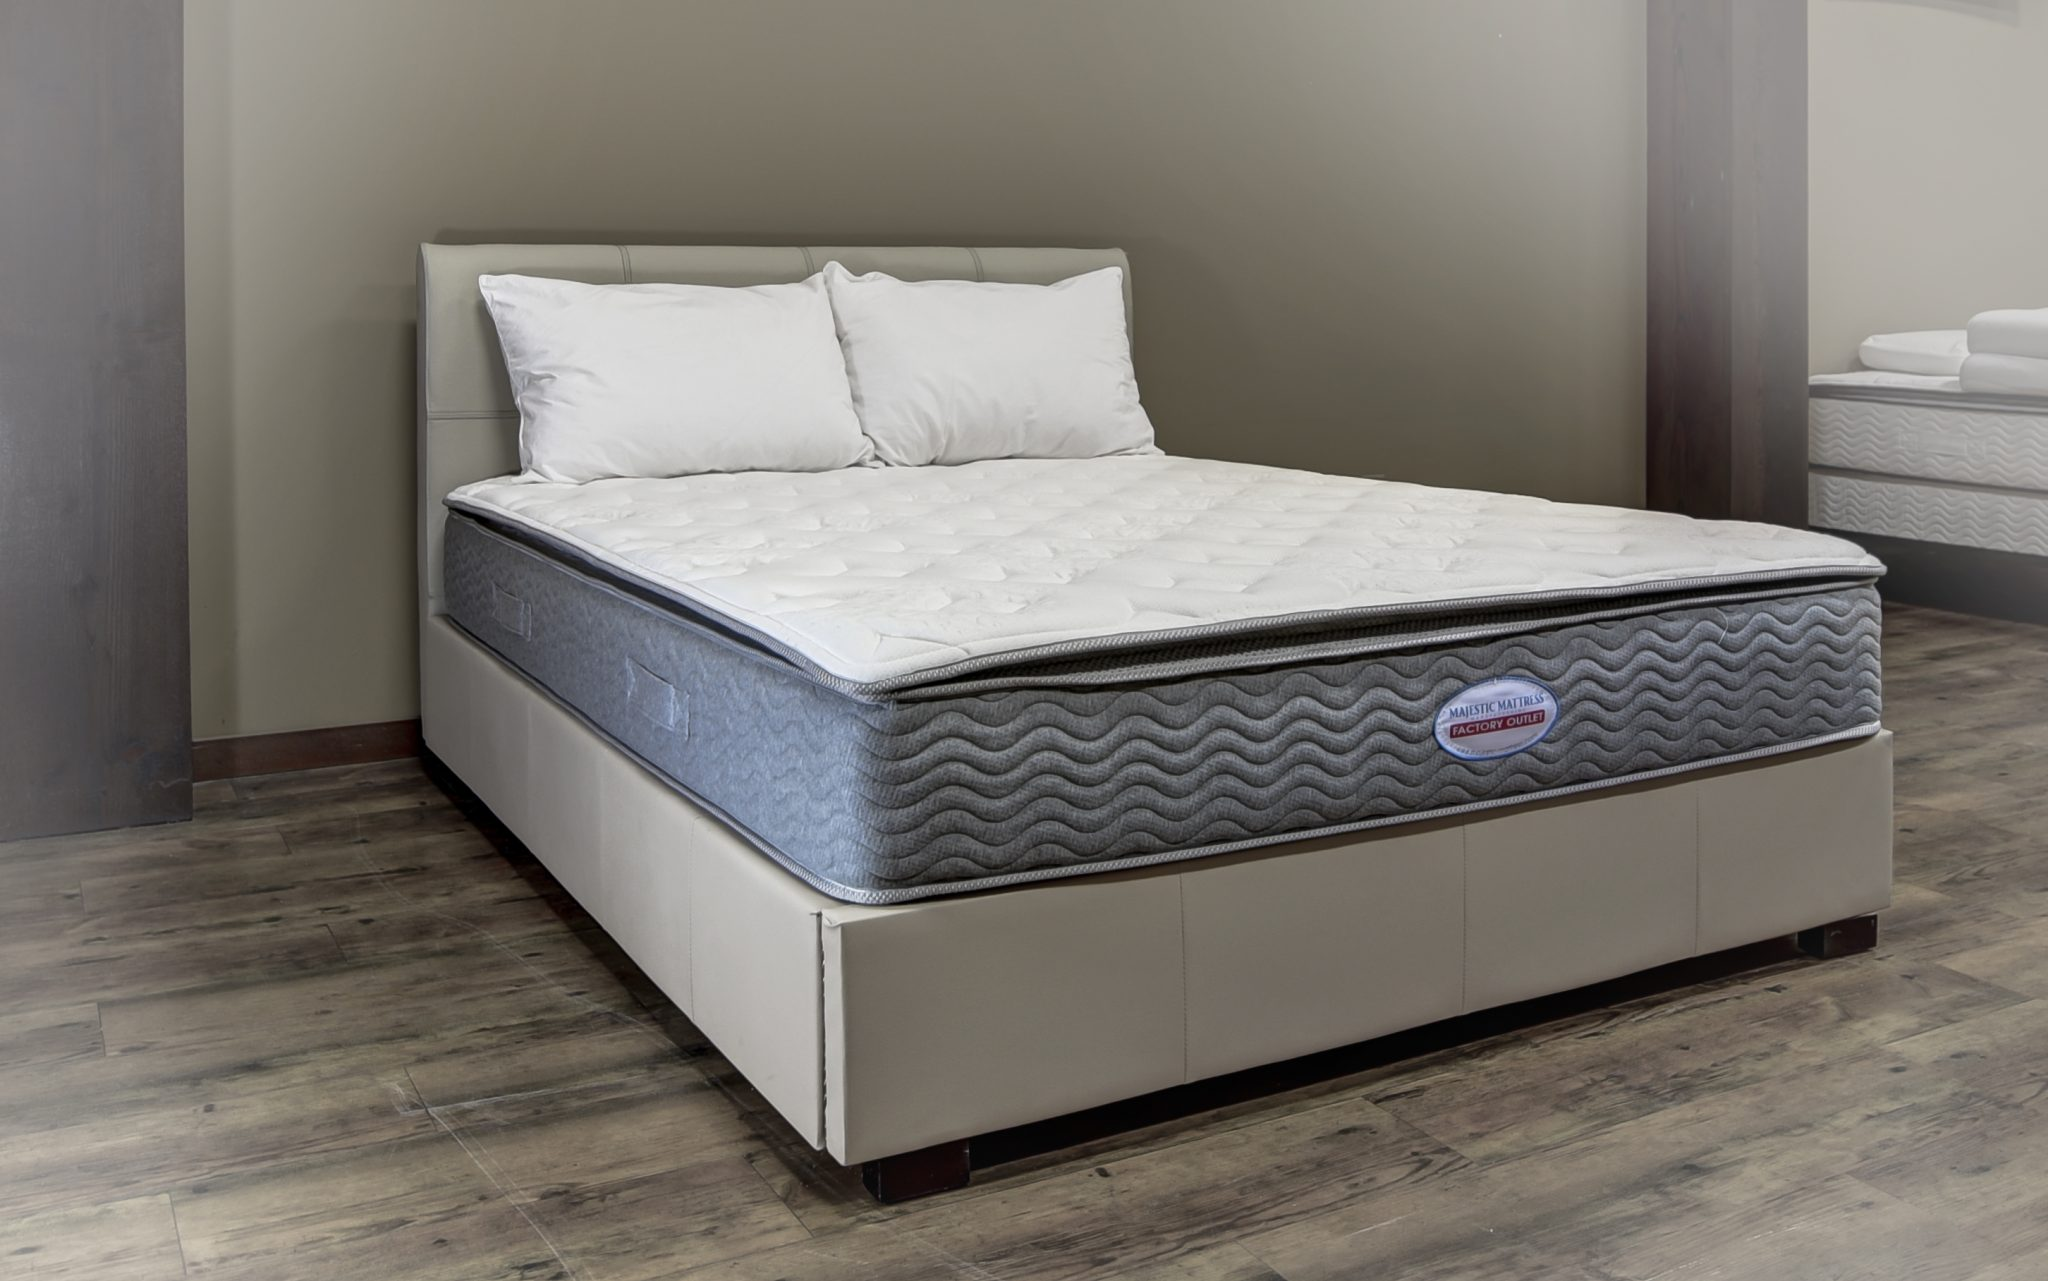 Bedroom Mattress Pacifica Pillow Top